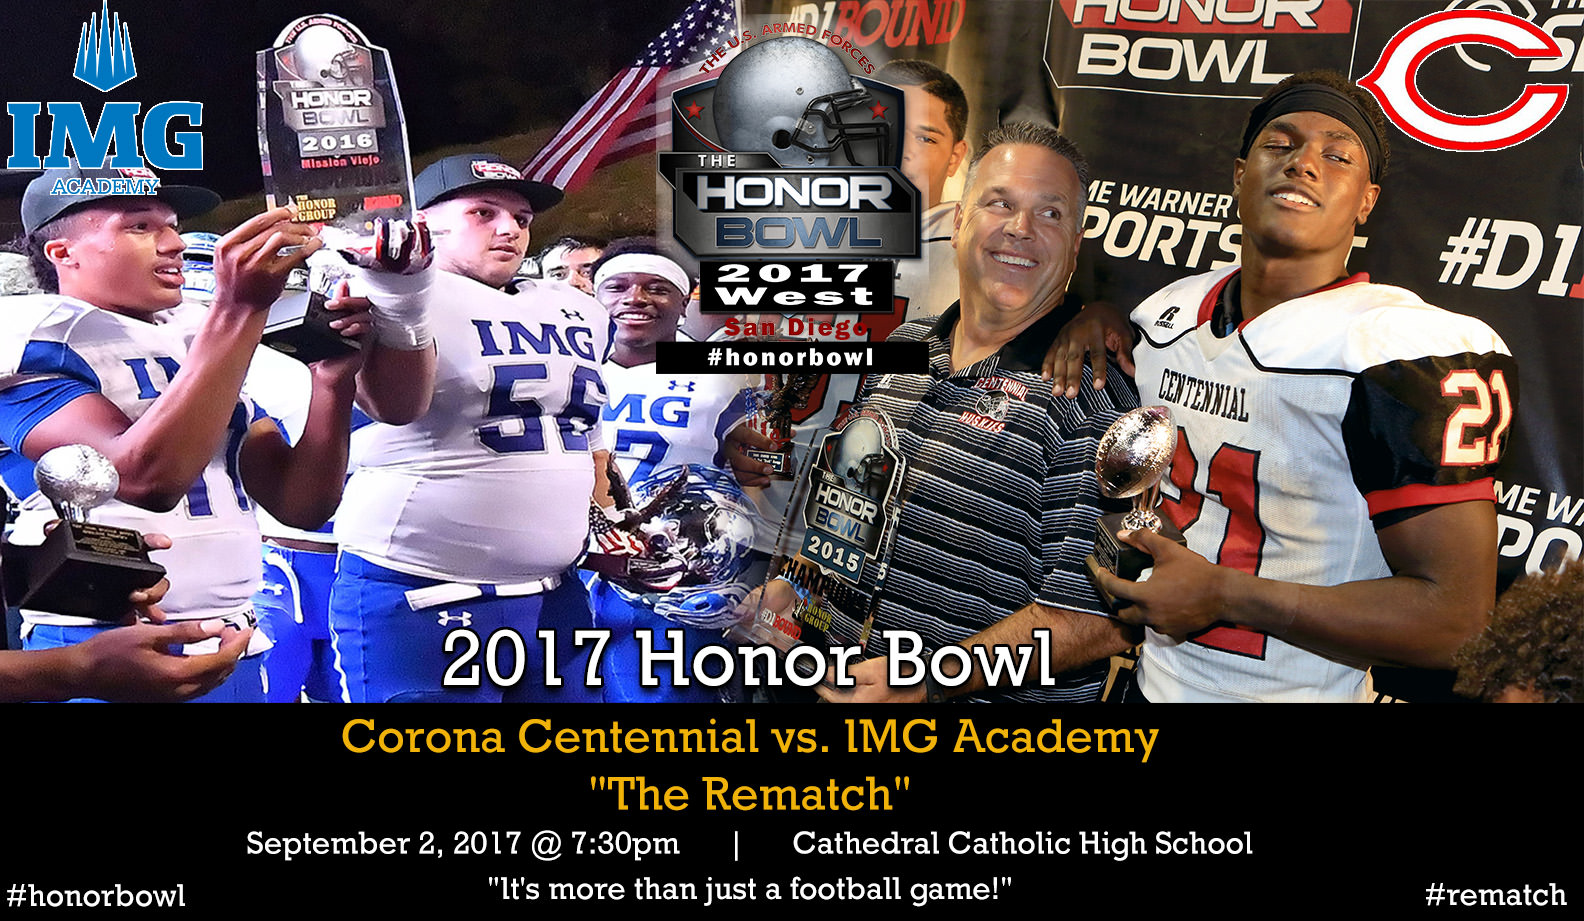 Game Five: Corona Centennial vs. IMG Academy